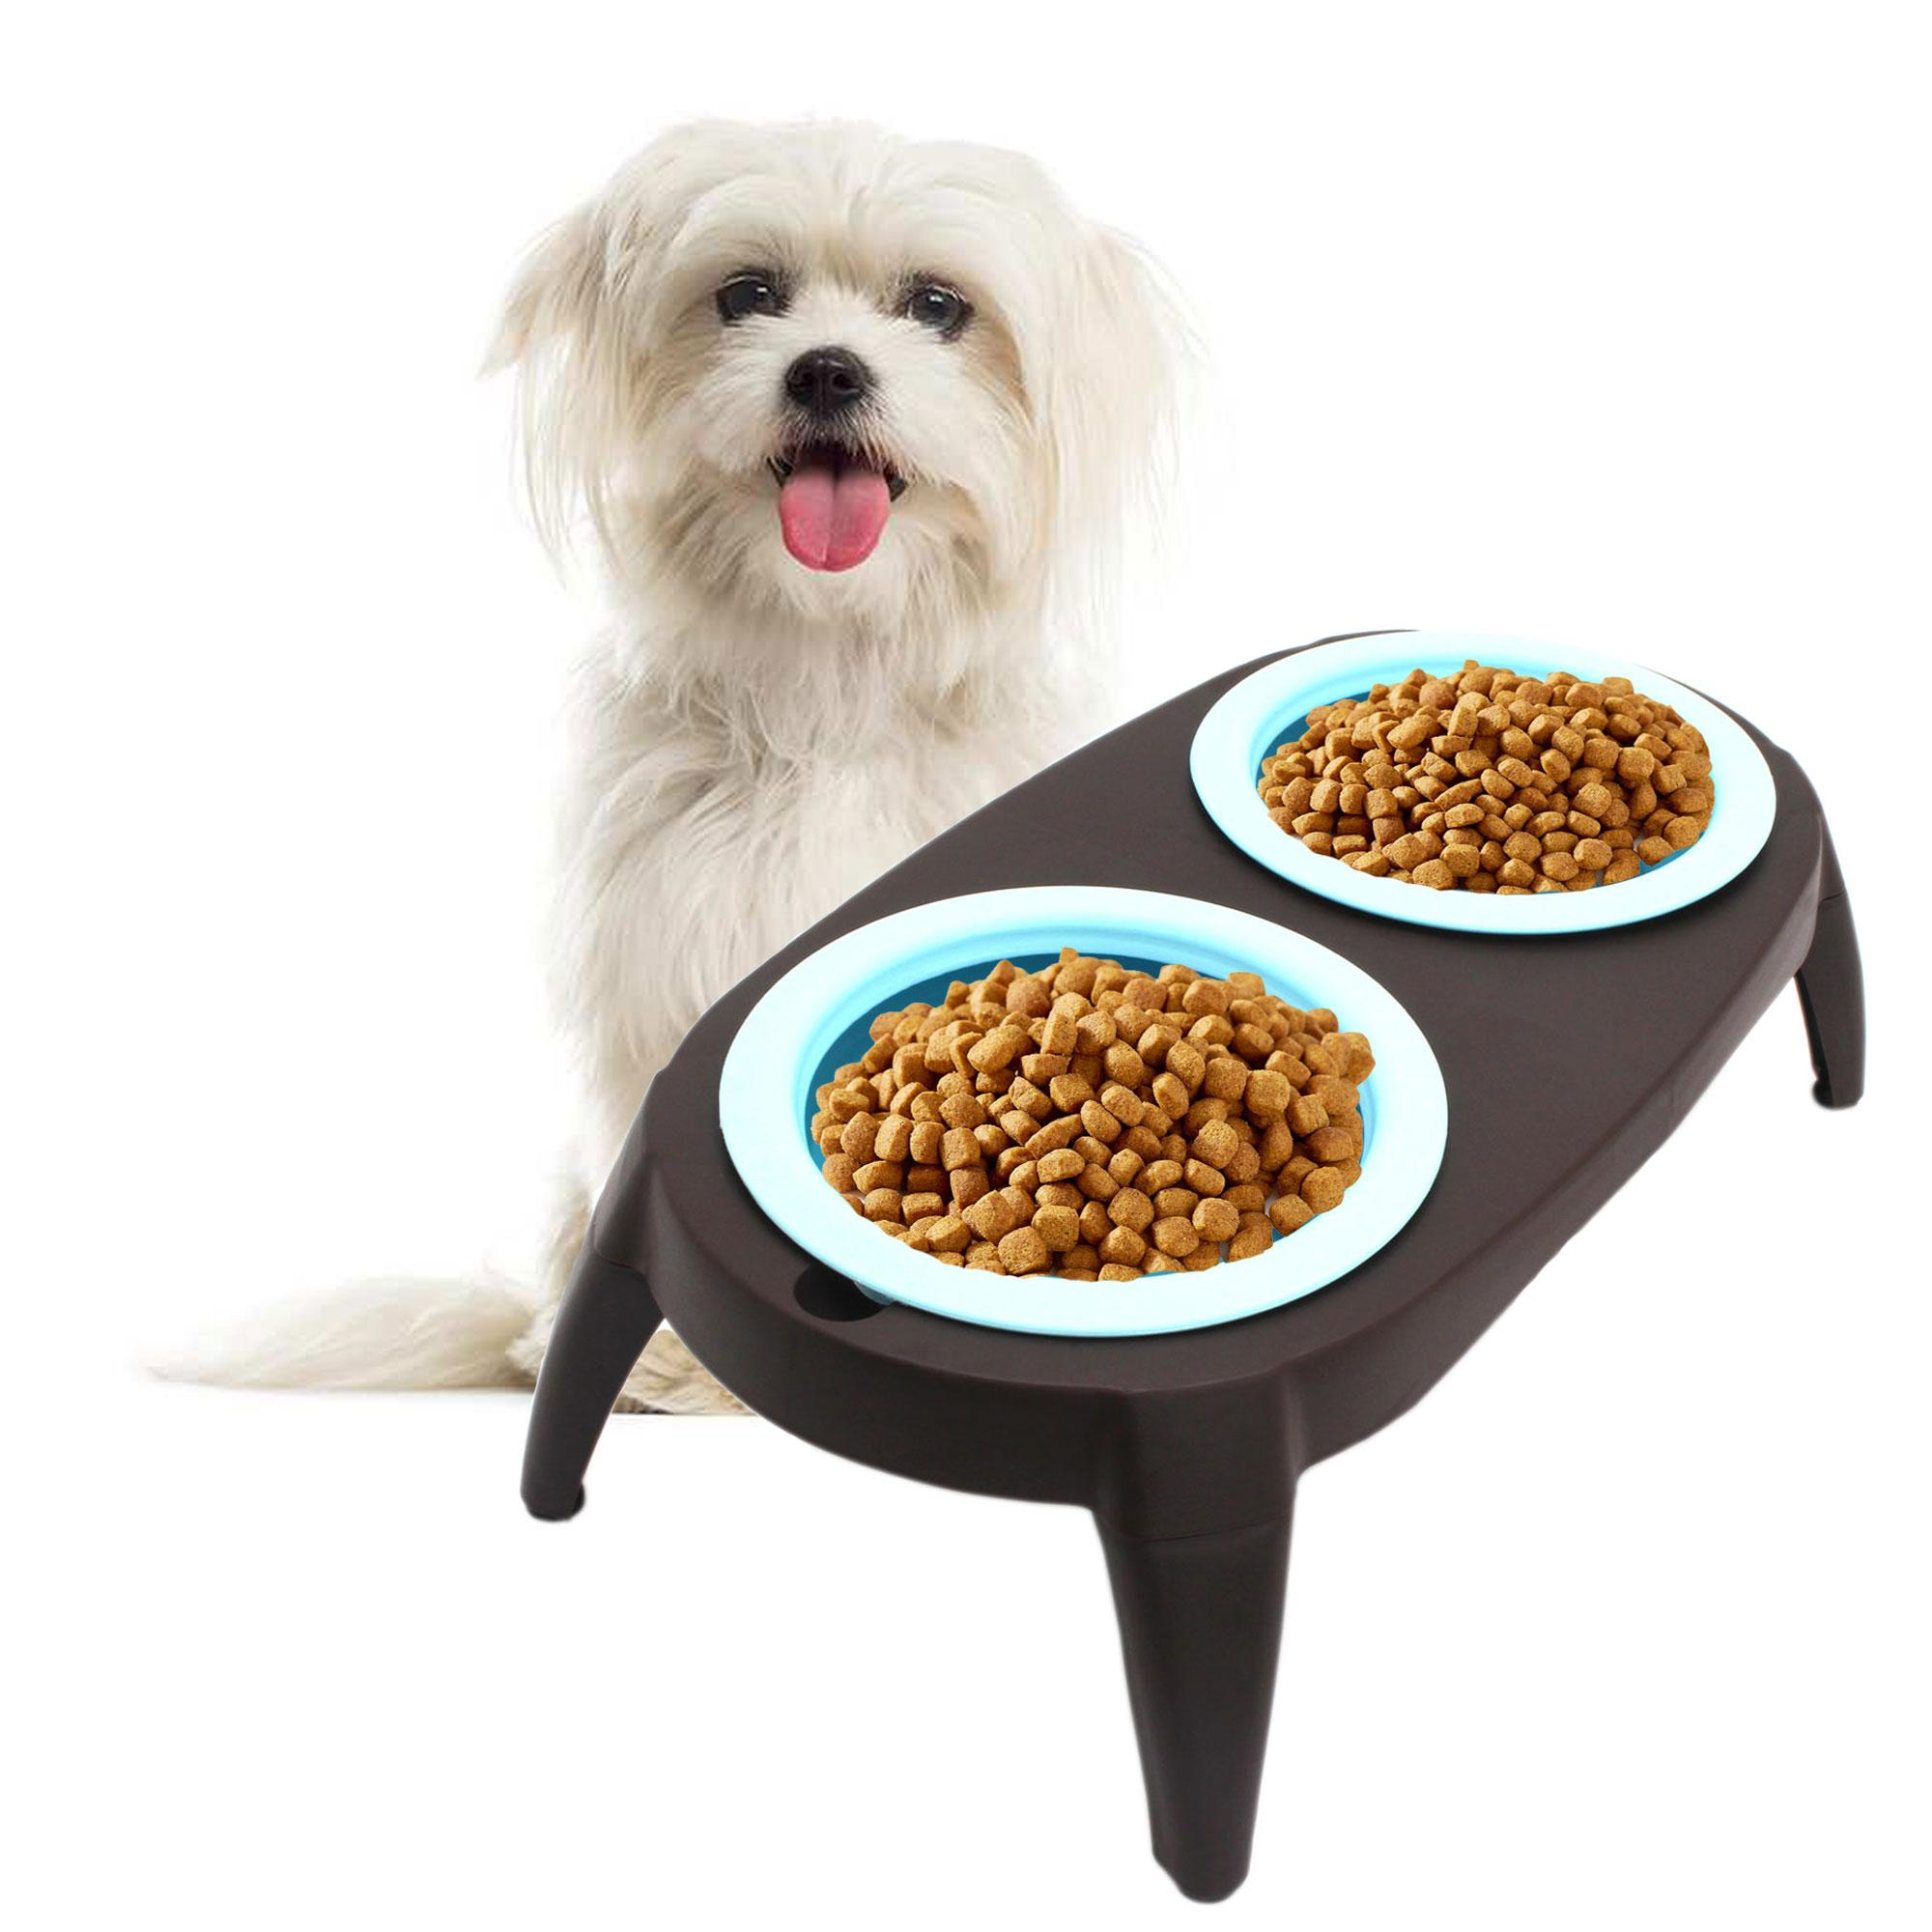 Dog Food Toppings For Sale Dog Food Toppers Online Brands Prices